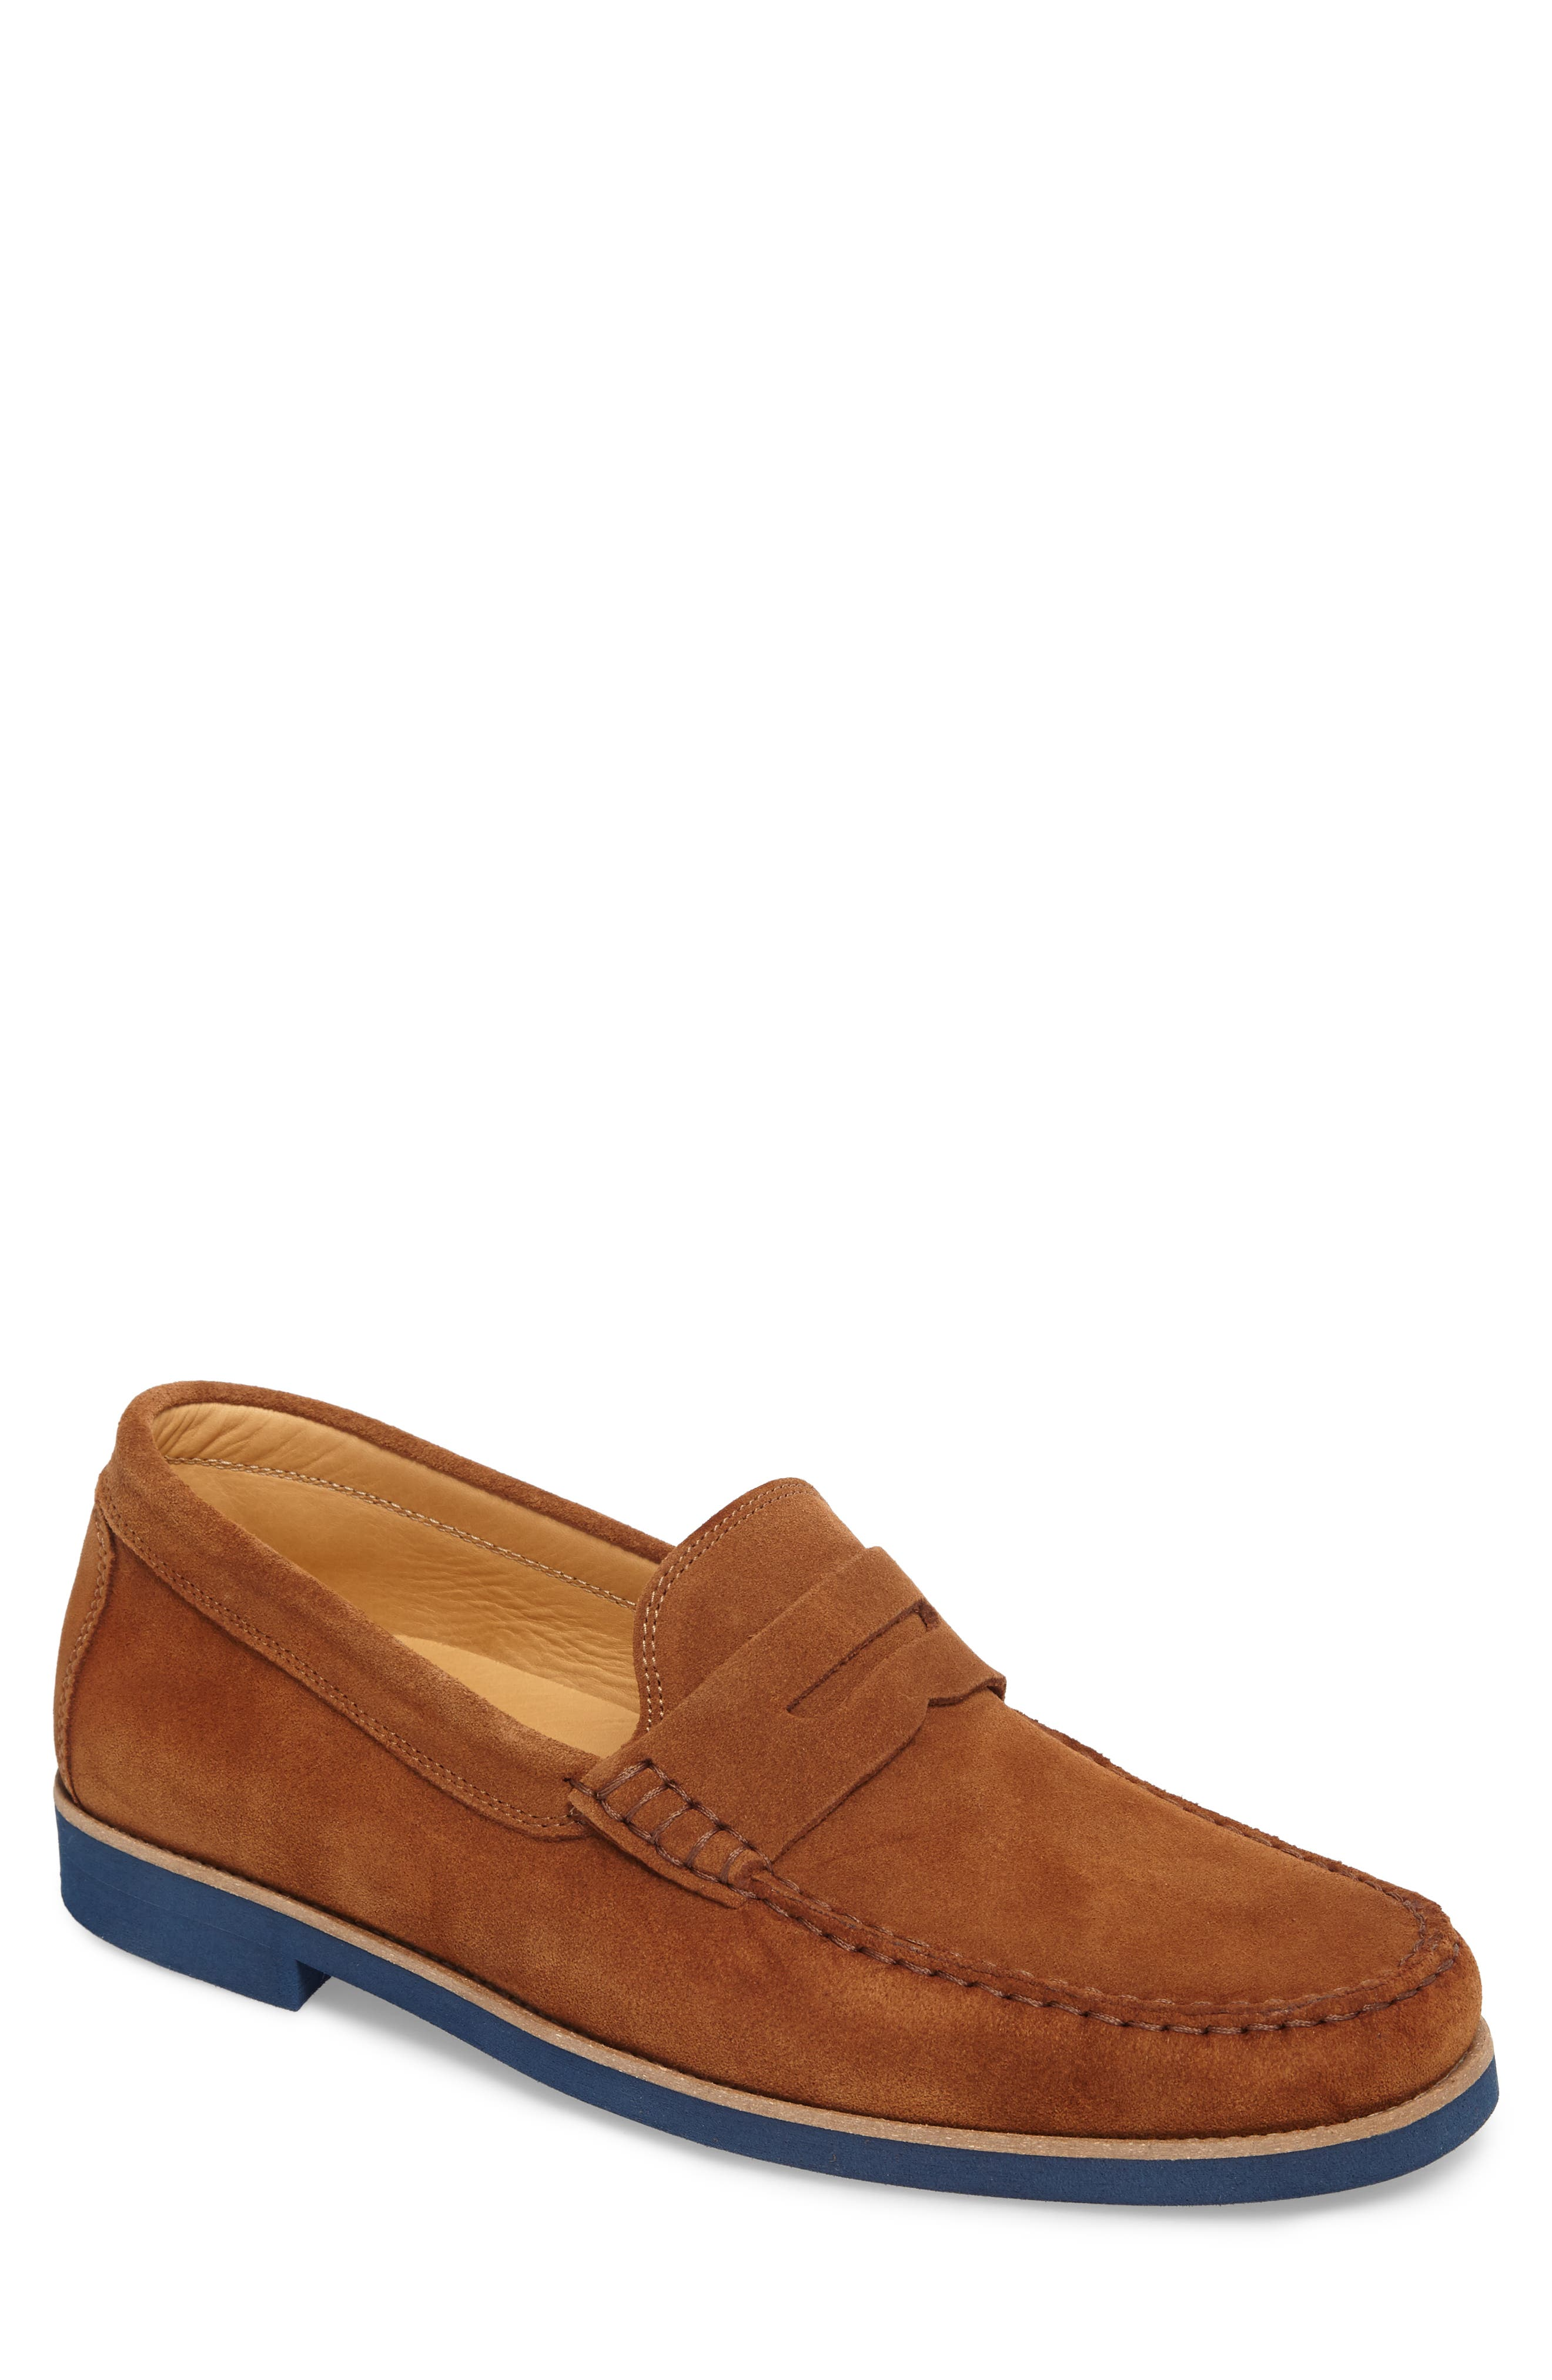 Kennedy Penny Loafer,                             Main thumbnail 1, color,                             Medium Brown Suede